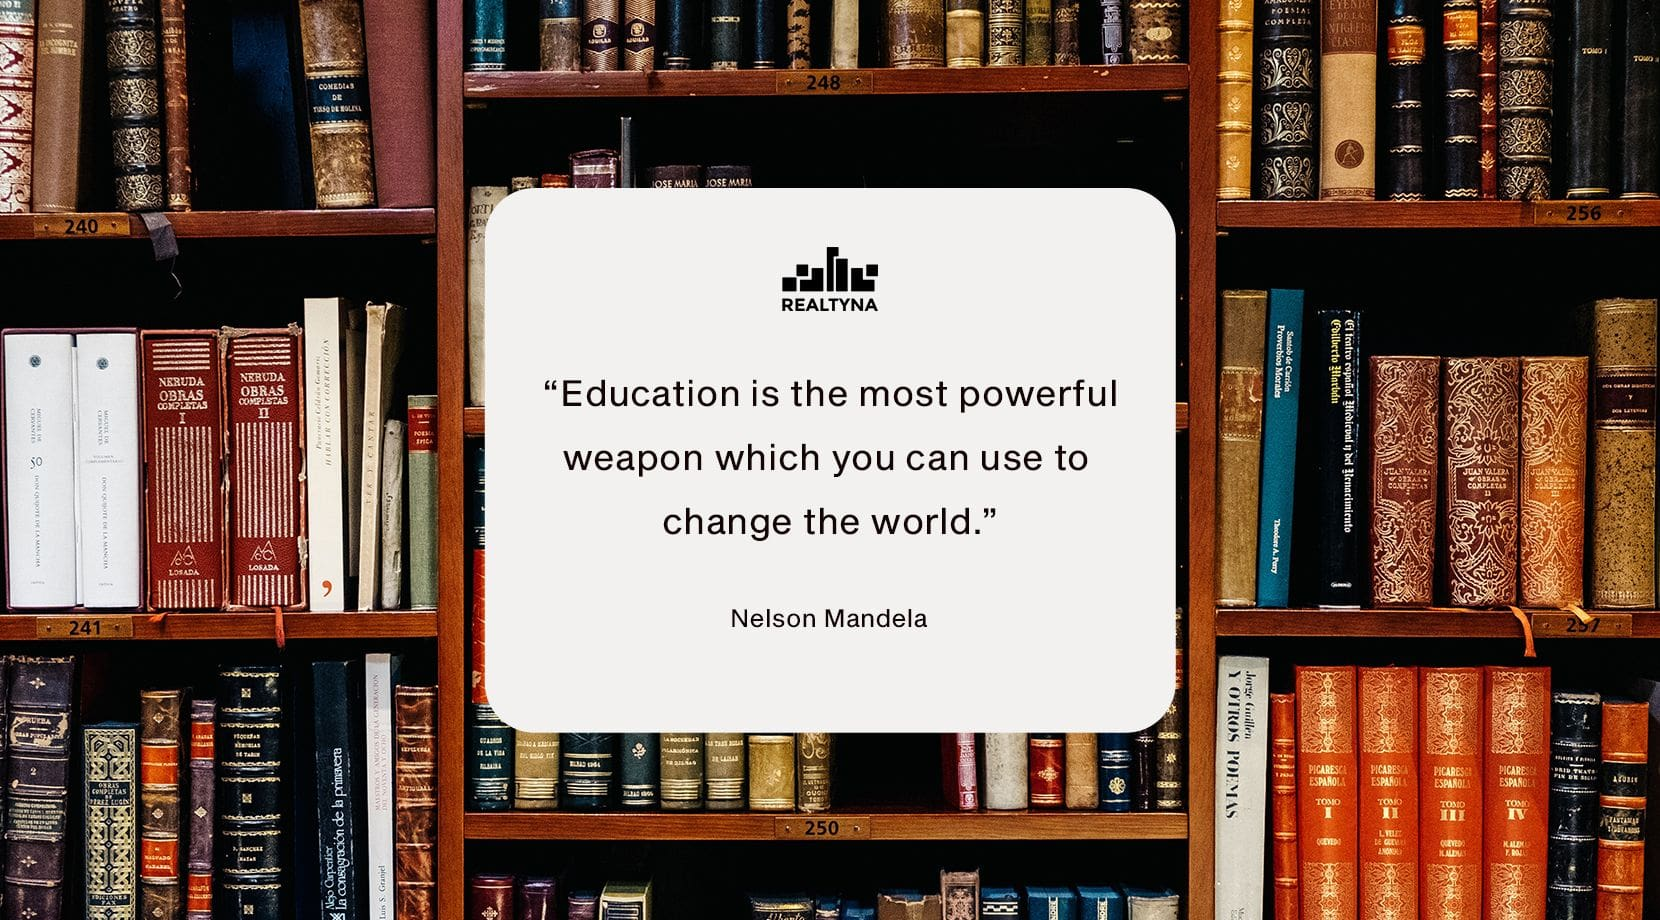 """Designed Image- """"Education is the most powerful weapon which you can use to change the world."""" (Nelson Mandela)"""